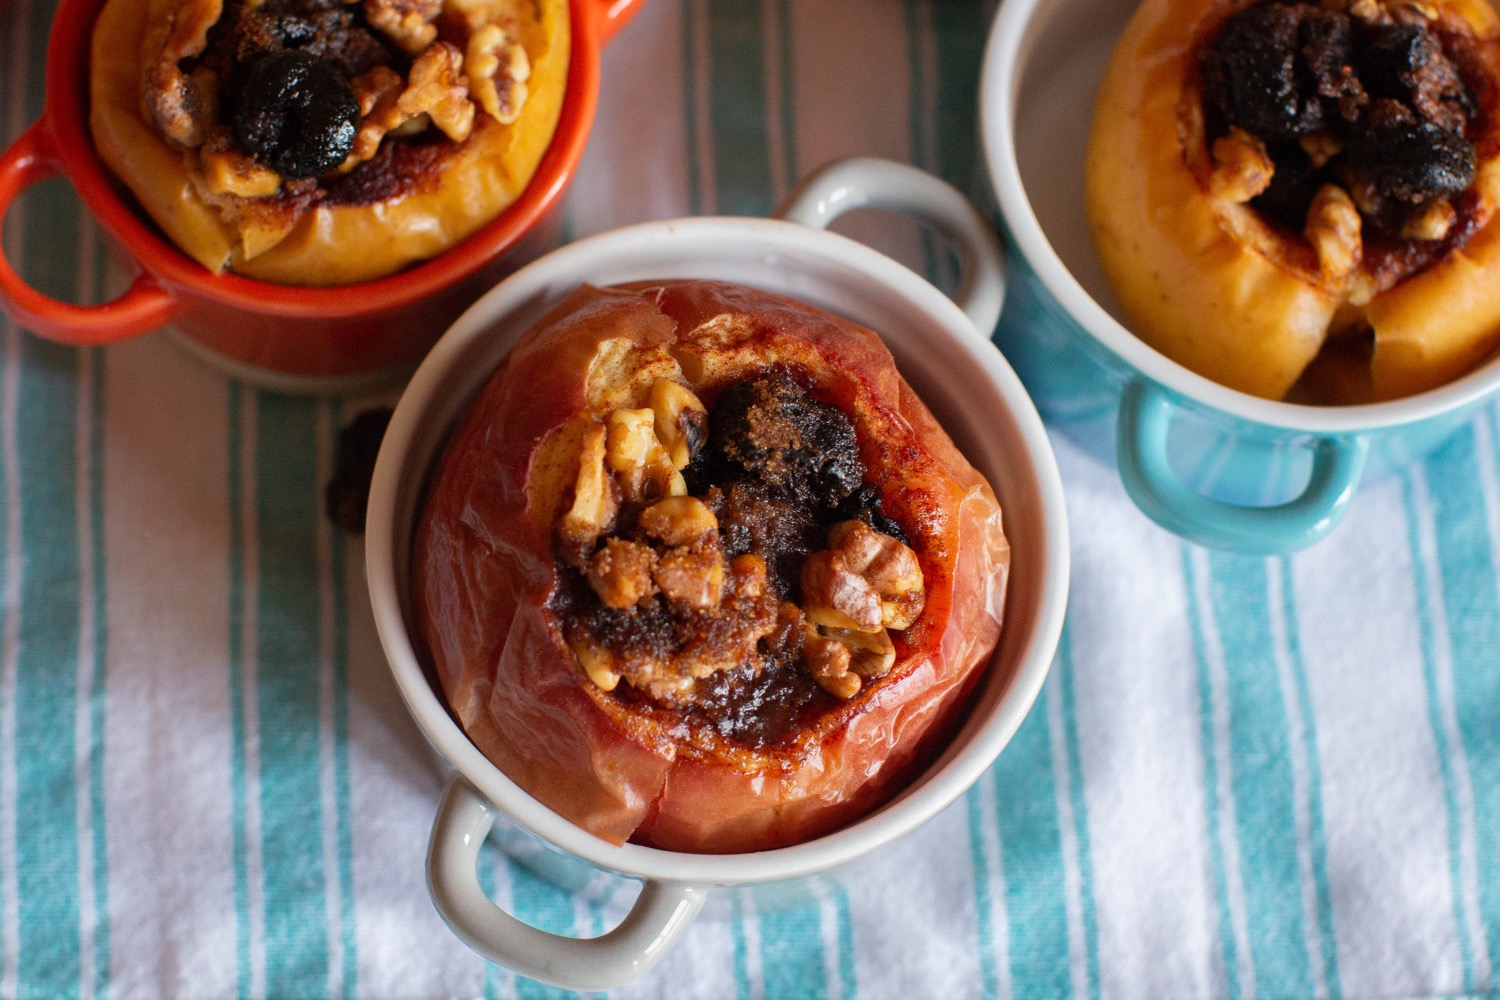 finished baked apples recipe with cherries and walnuts